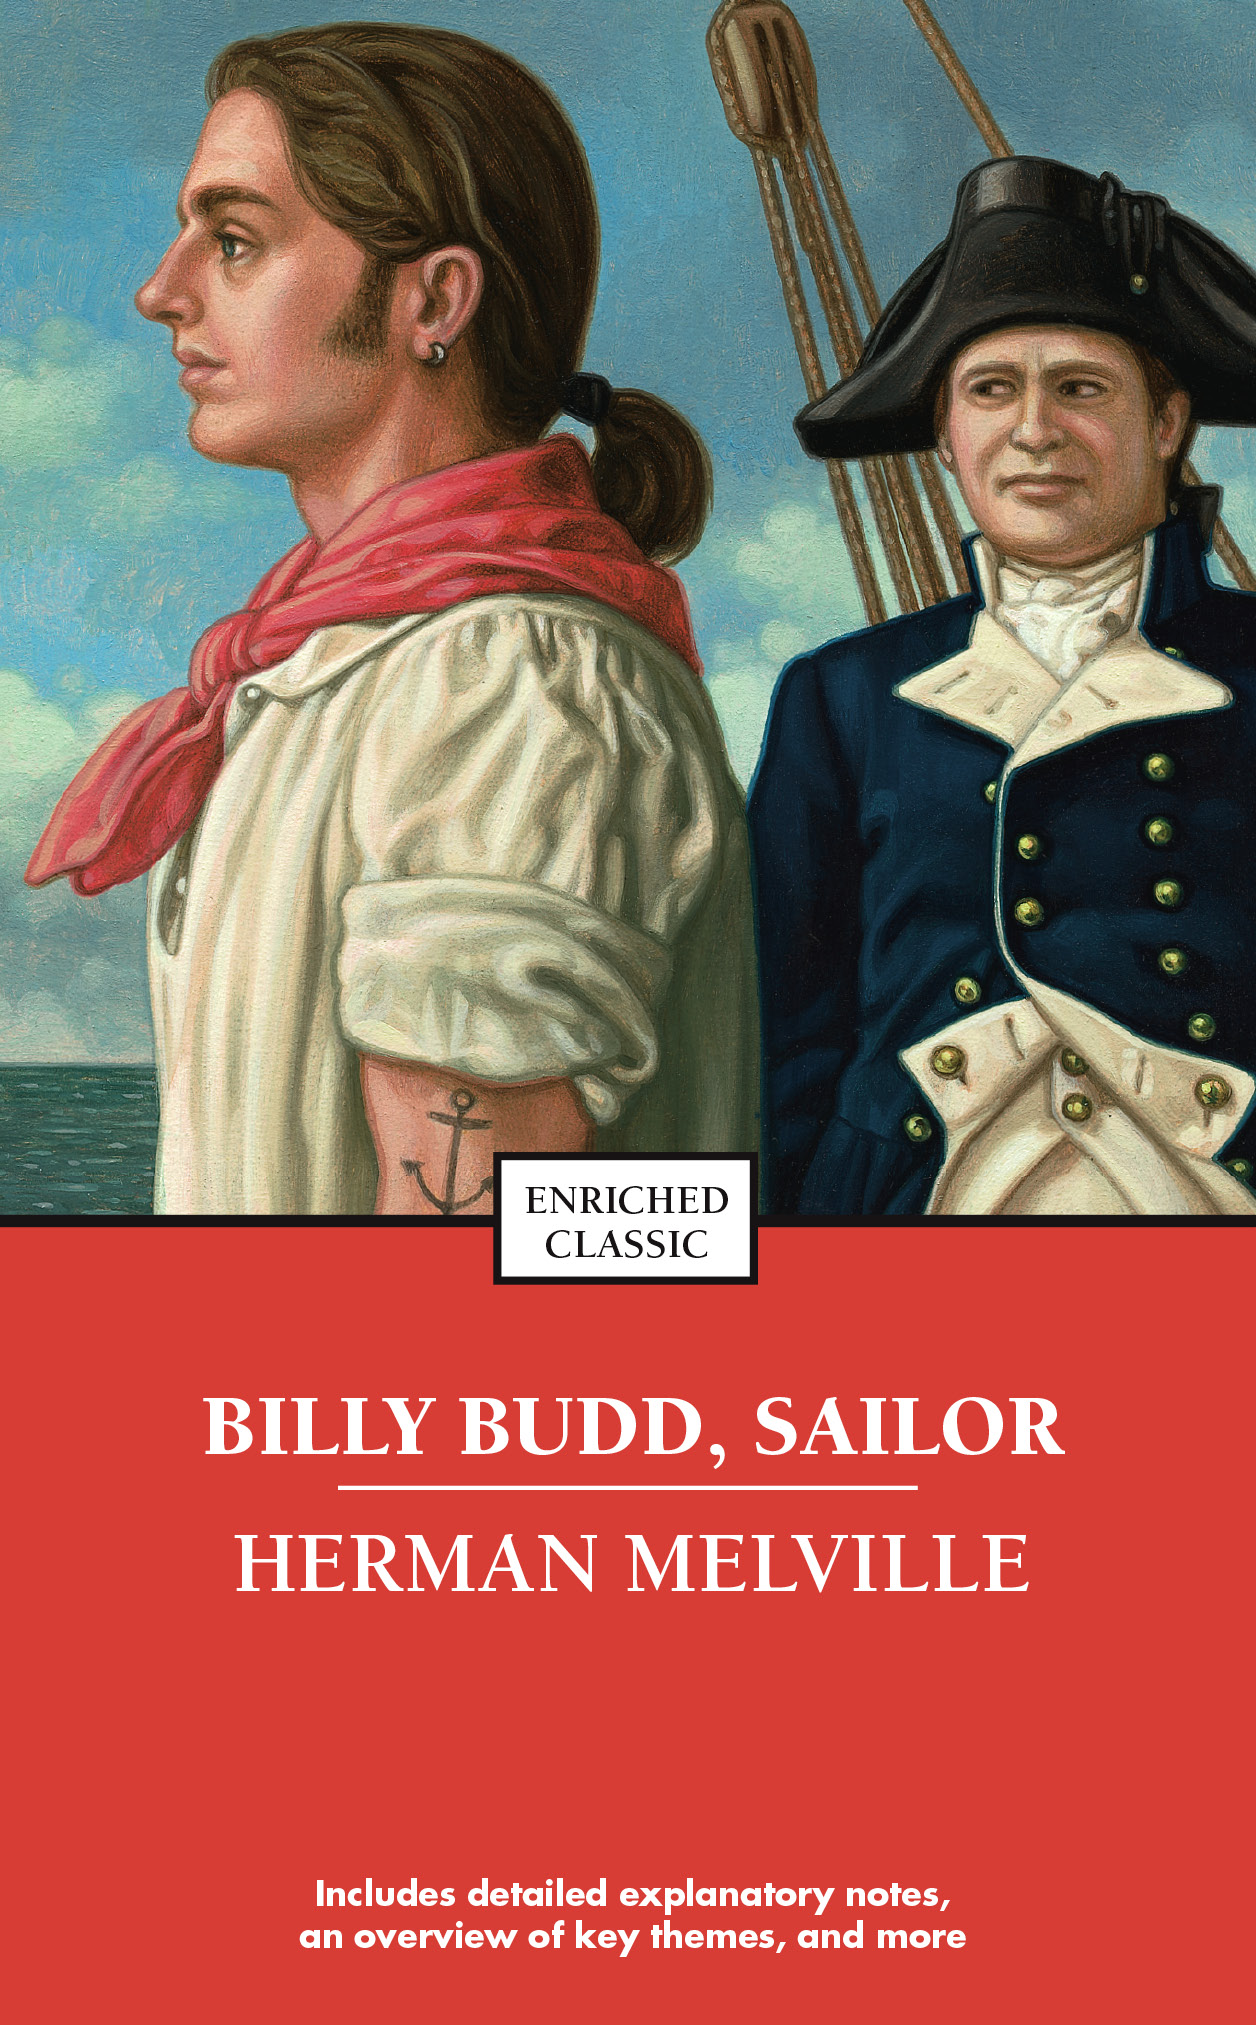 critical analysis of Billy Budd by Herman Melville